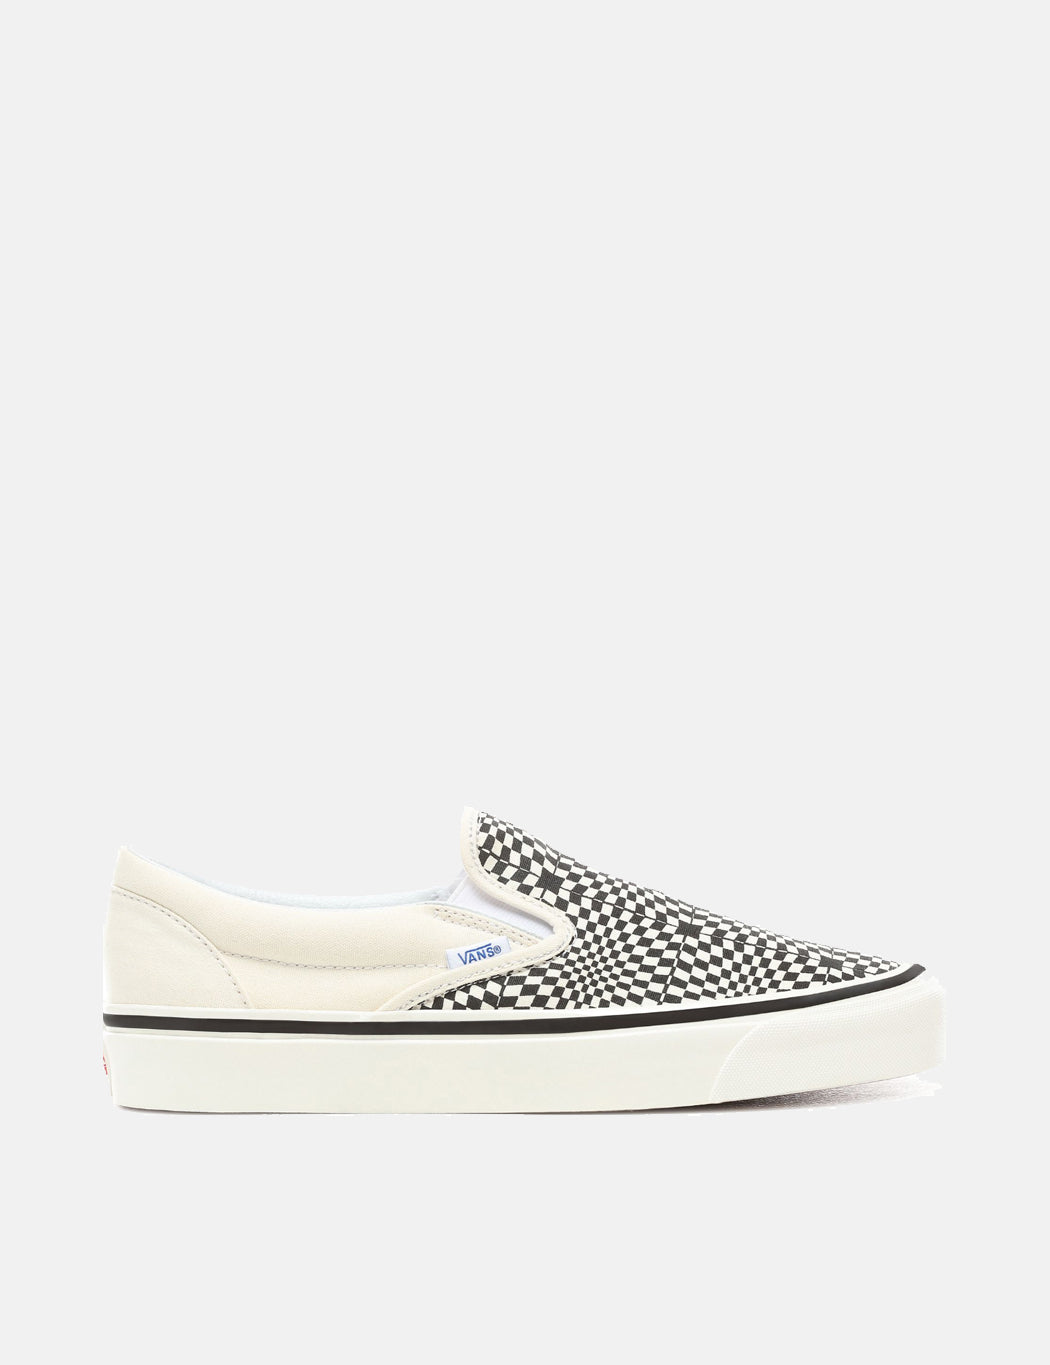 280f7d17668b4f Vans Classic Slip-On 98 DX (Canvas) in Anaheim Factory OG Black White Warp  Check